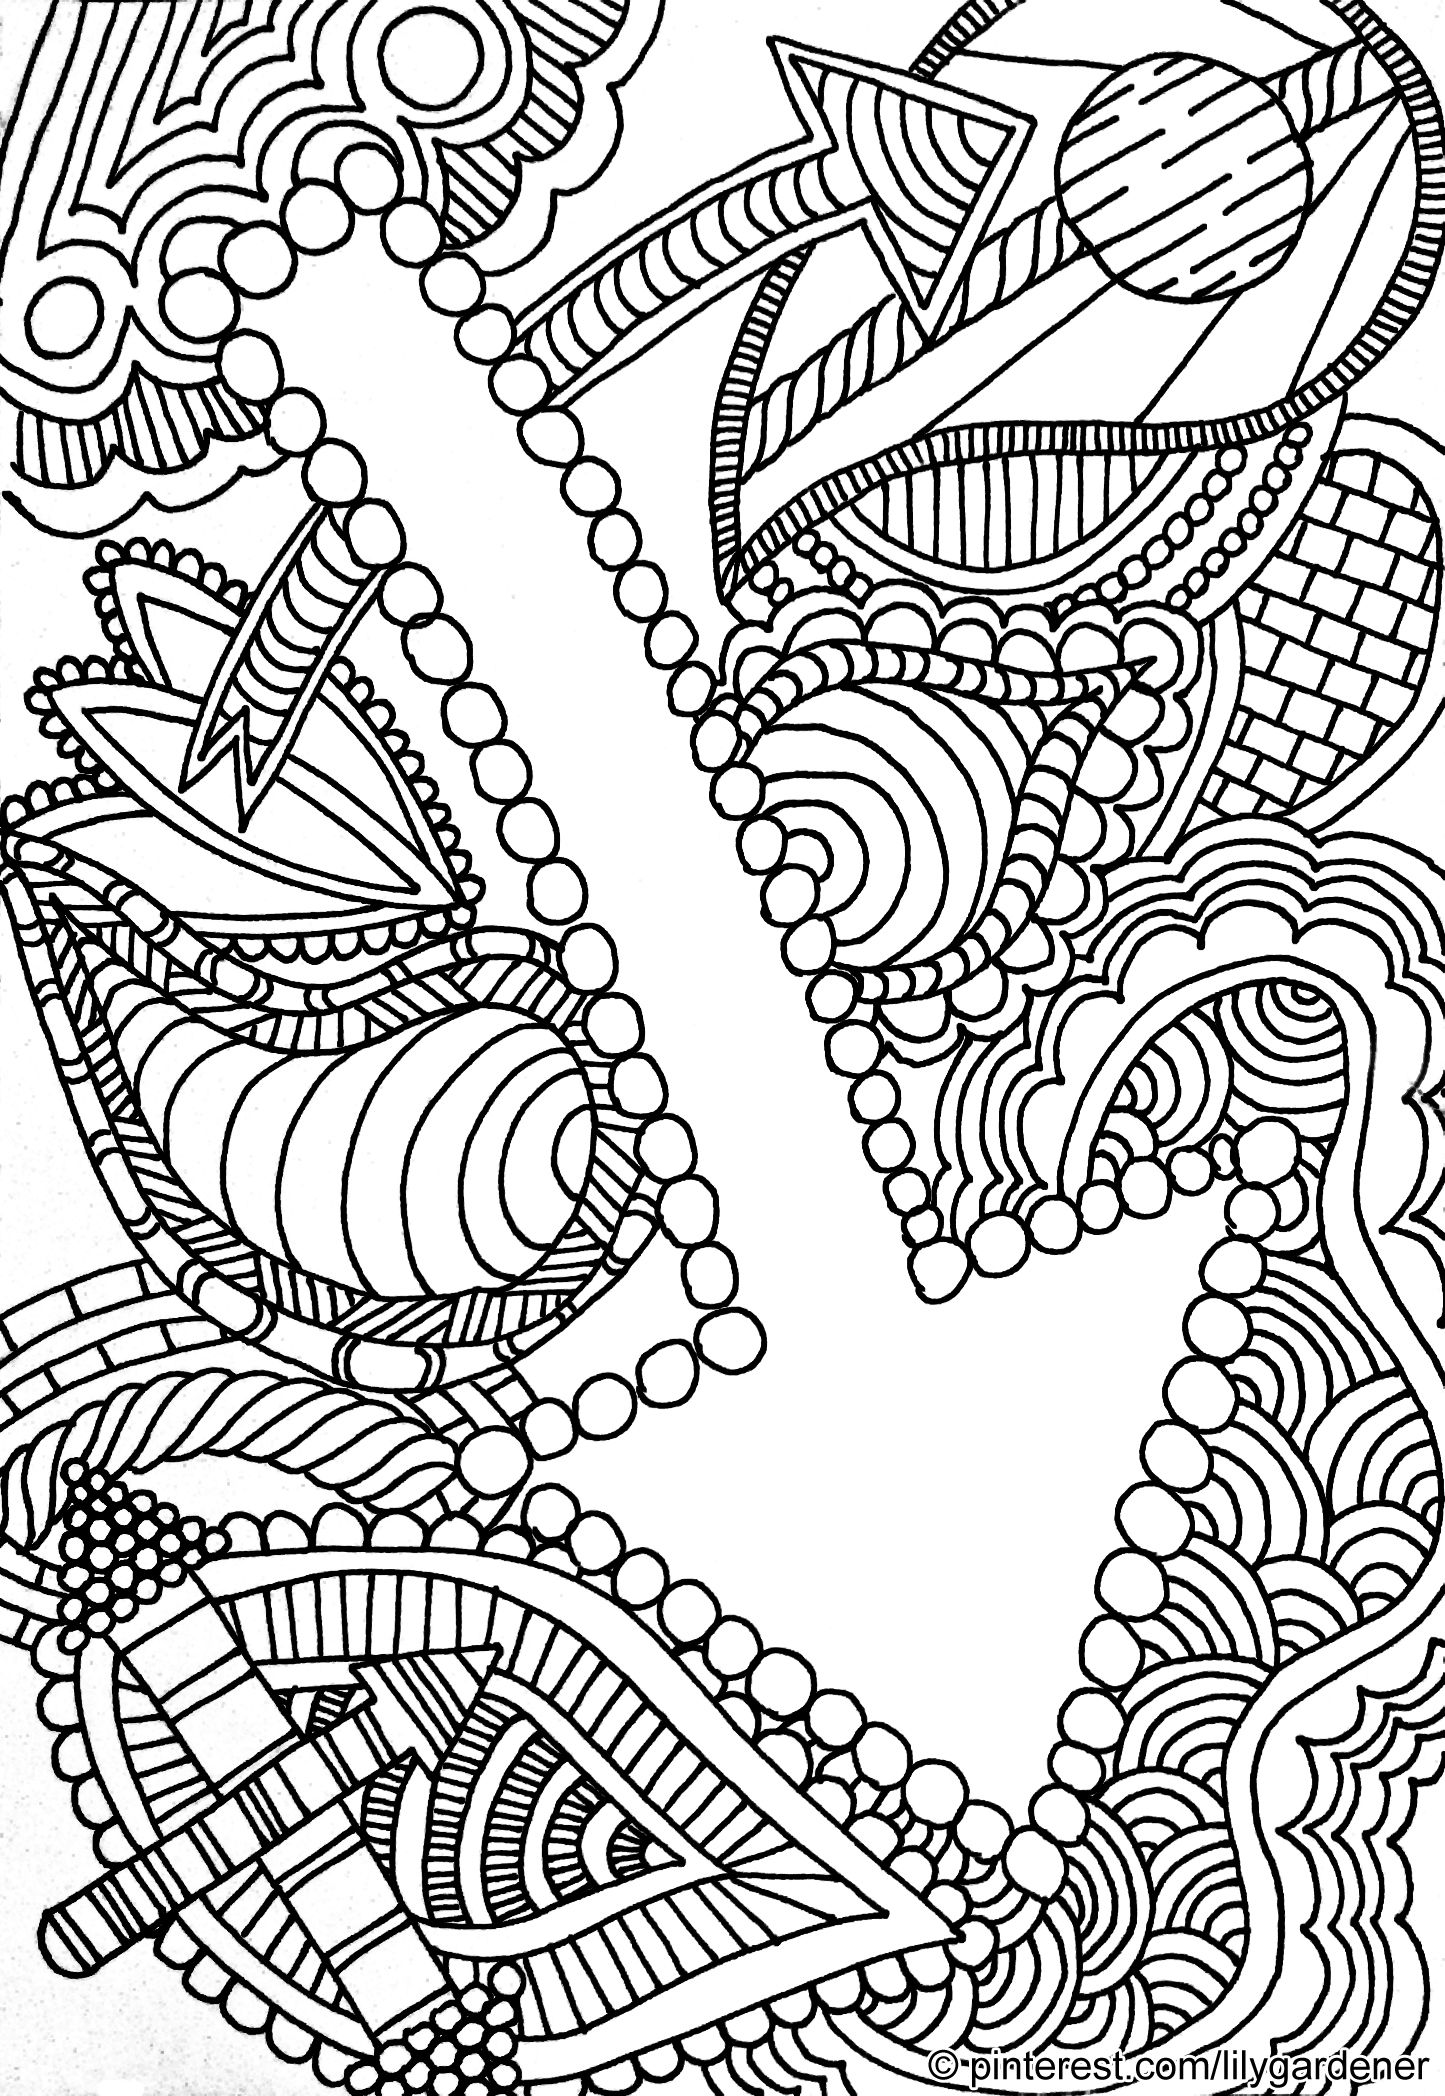 Abstract Coloring Page for Adults (high resolution), free